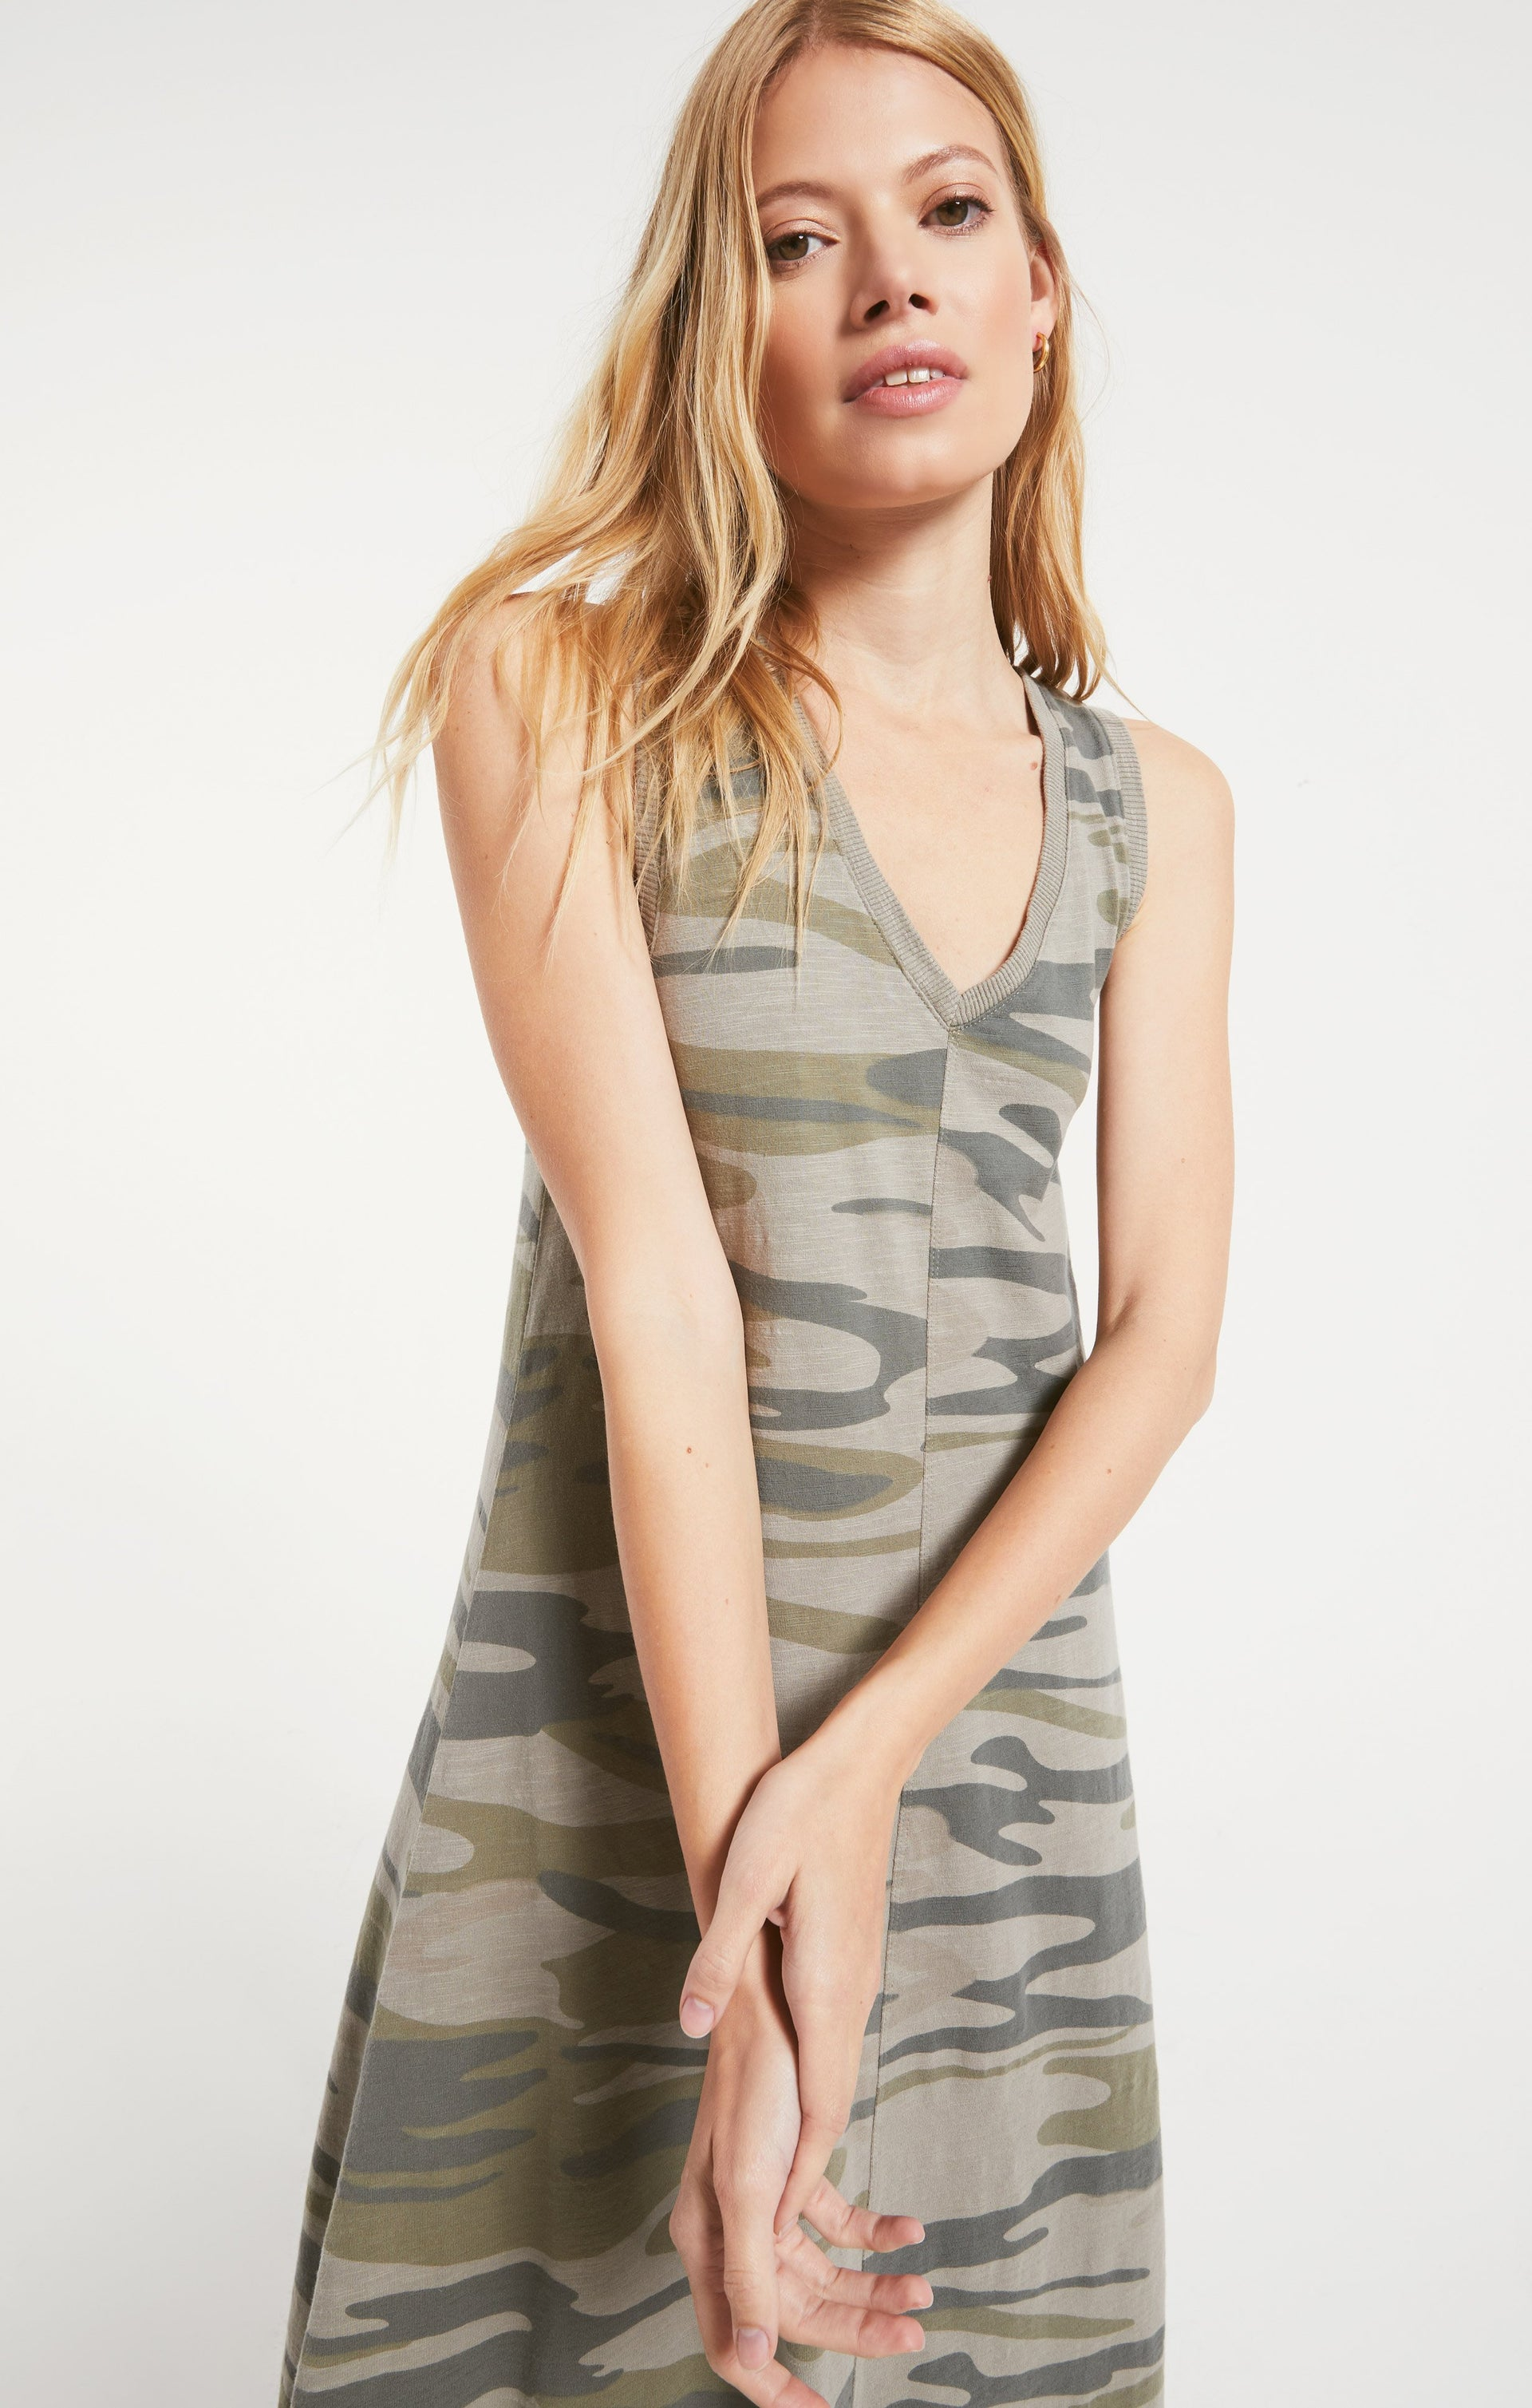 Dresses Camo Reverie Dress Camo Reverie Dress